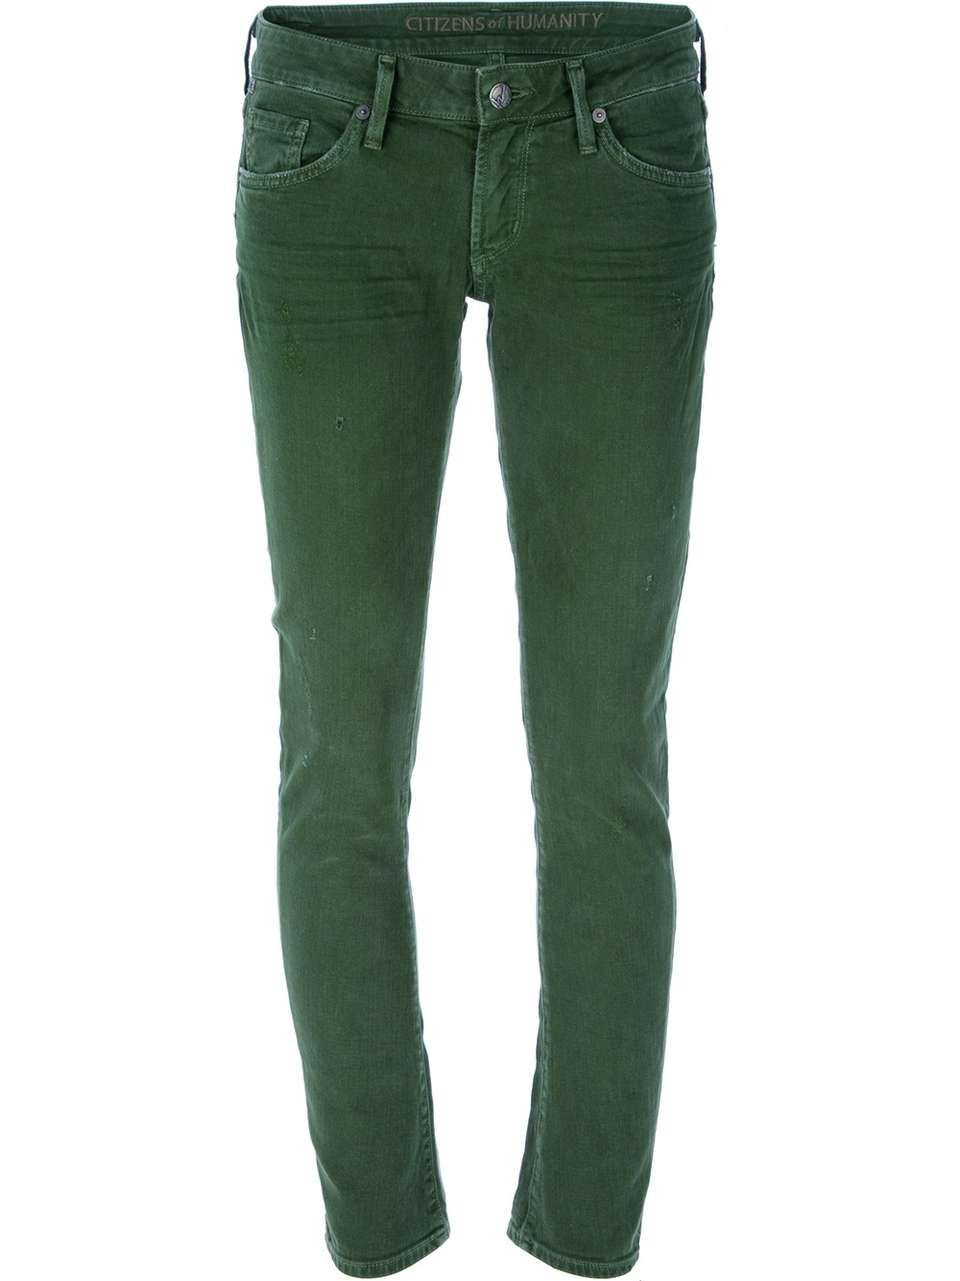 Citizens Of Humanity slim fit jean